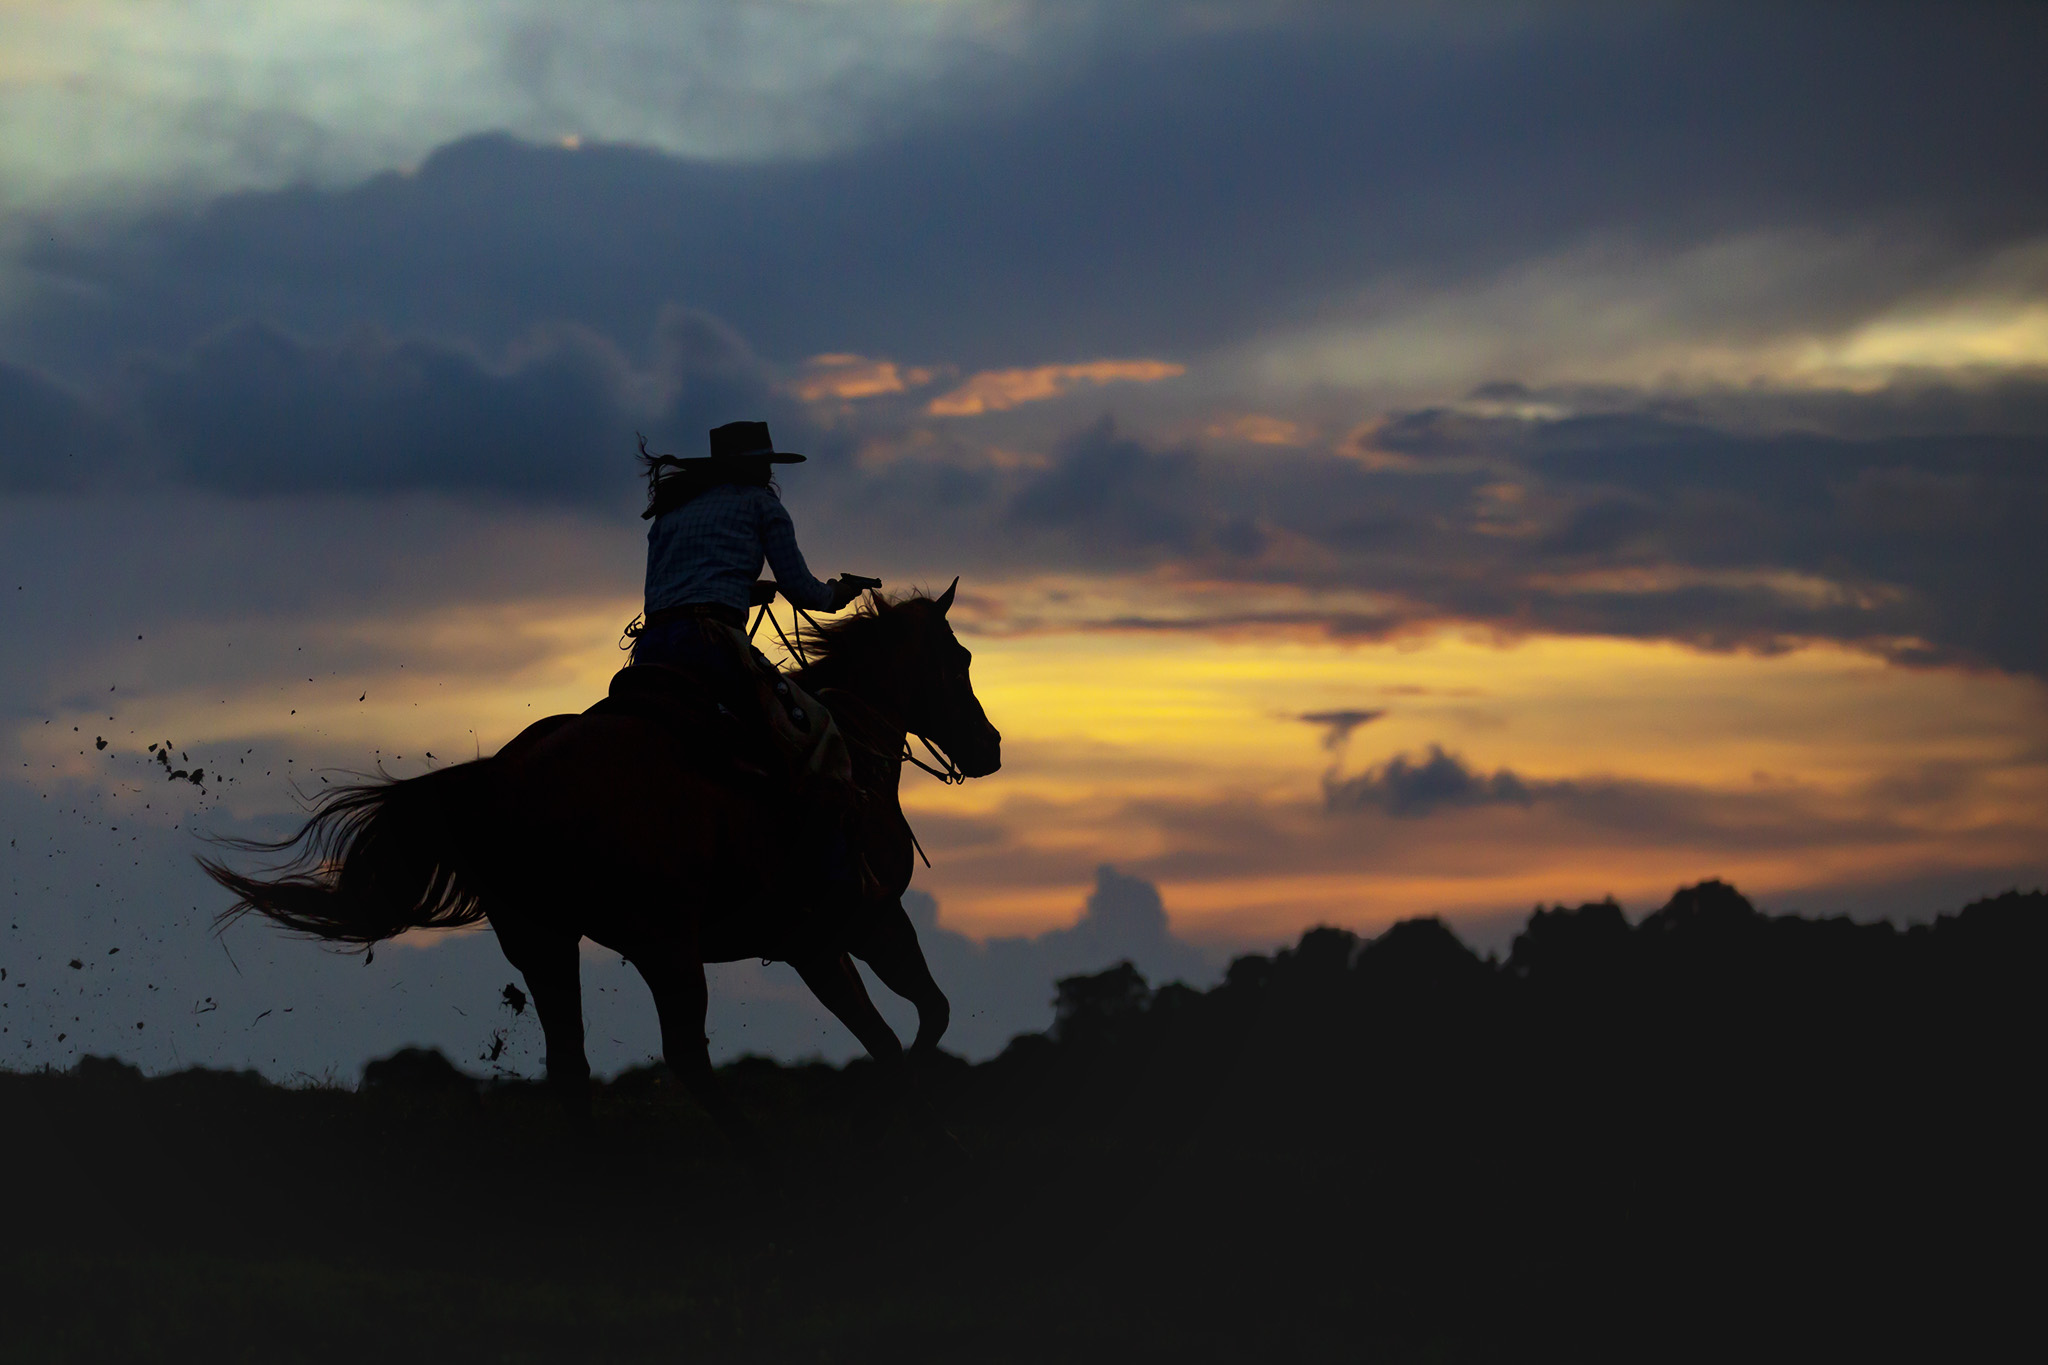 Commercial Equestrian Lifestyle image of cowgirl riding horse at sunset